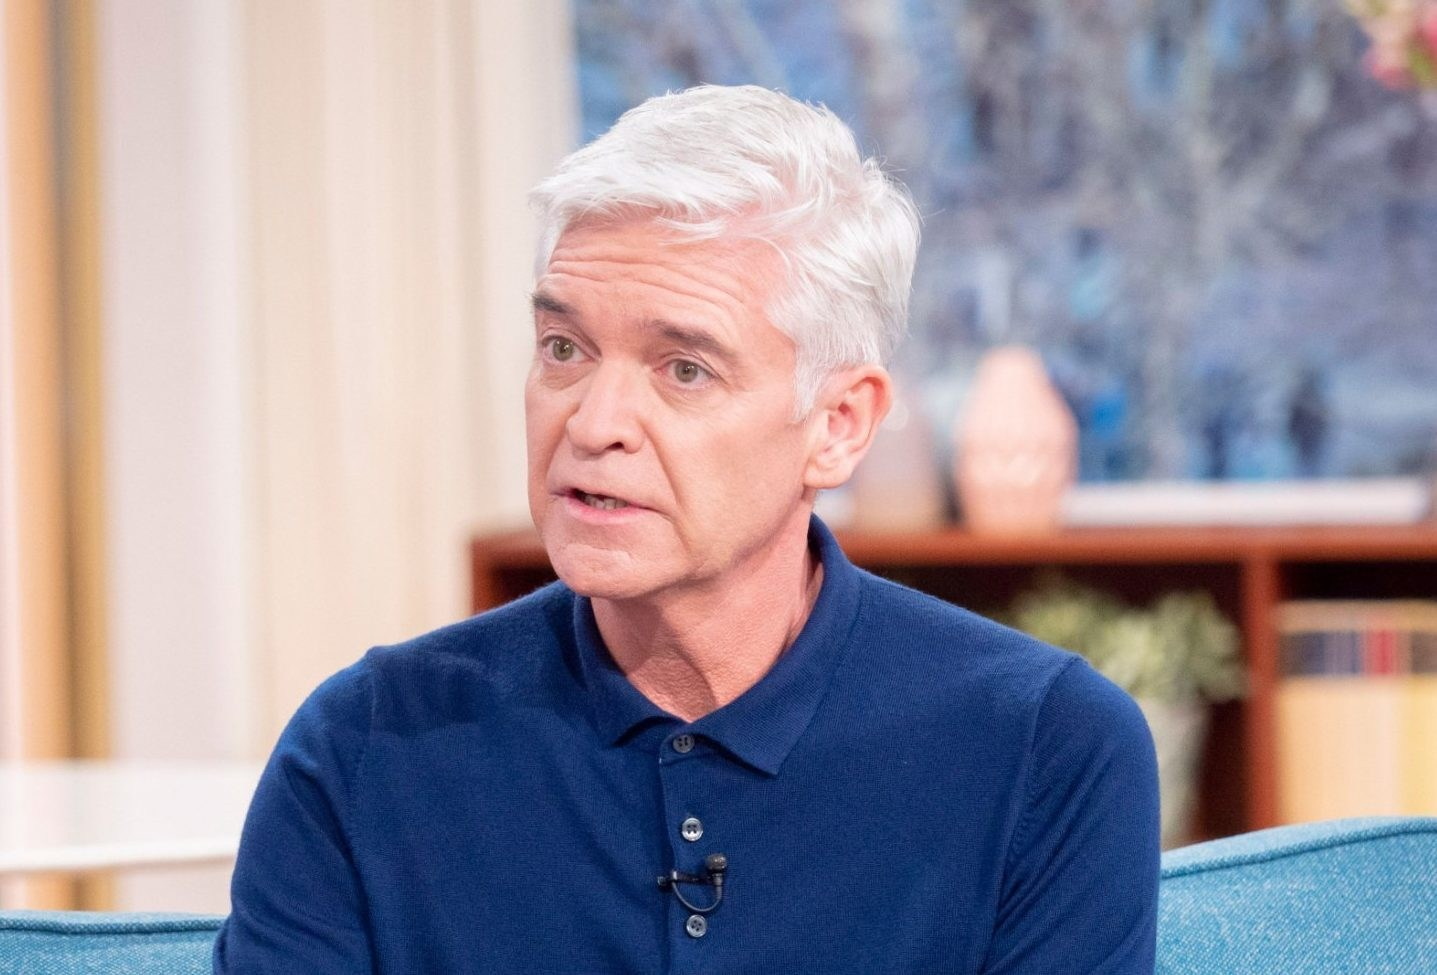 Phillip Schofield has given up on lockdown routine as he shows off new hairdo